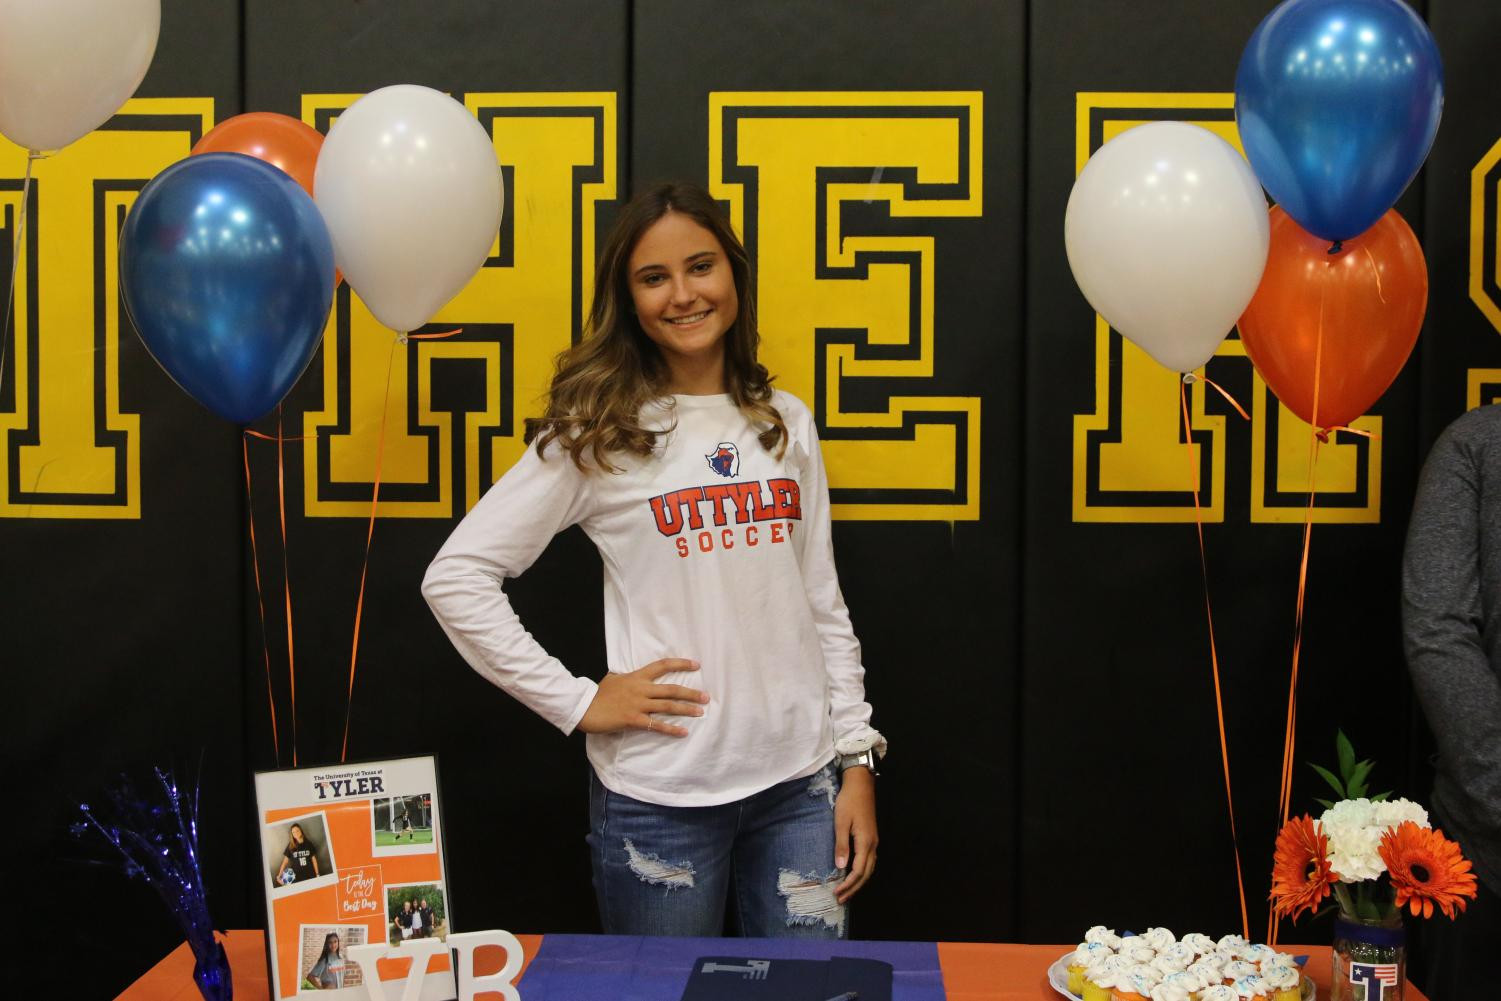 Vanessa Bart takes a moment for photos on signing day. She officially commitmented to UT Tyler to play soccer.